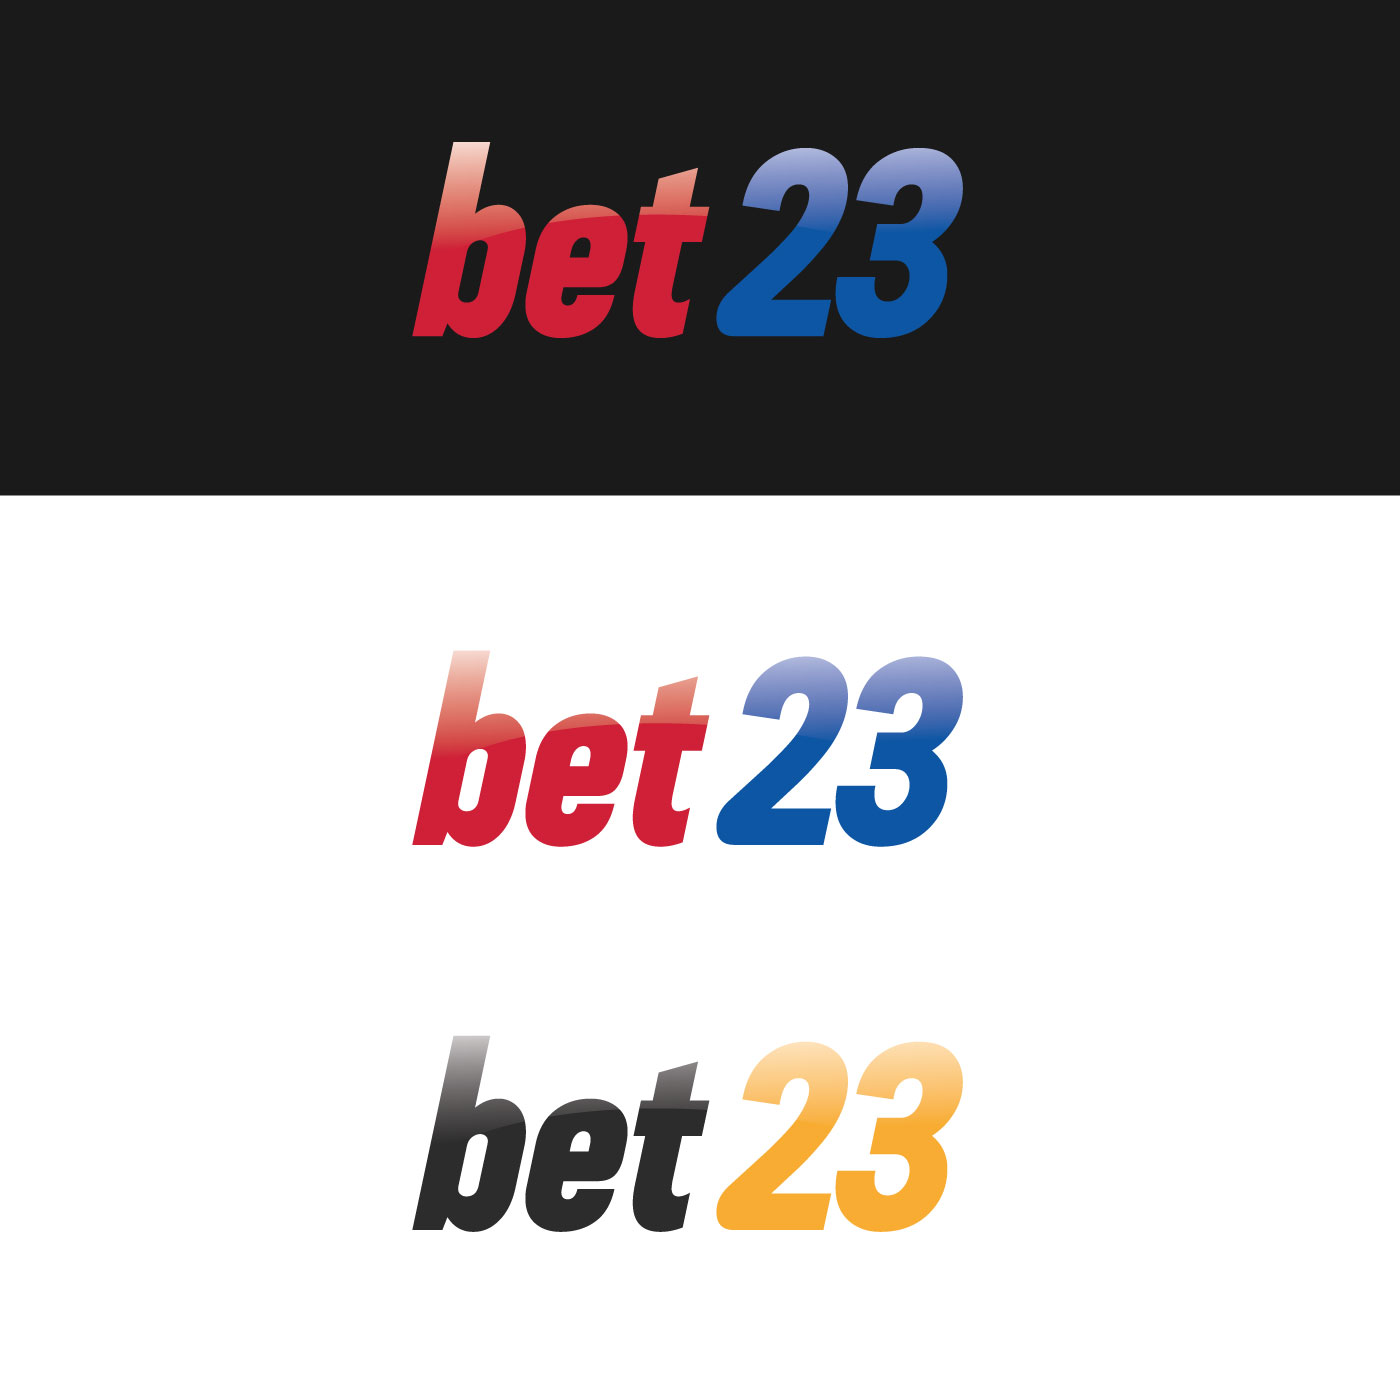 100 Images of Bet23